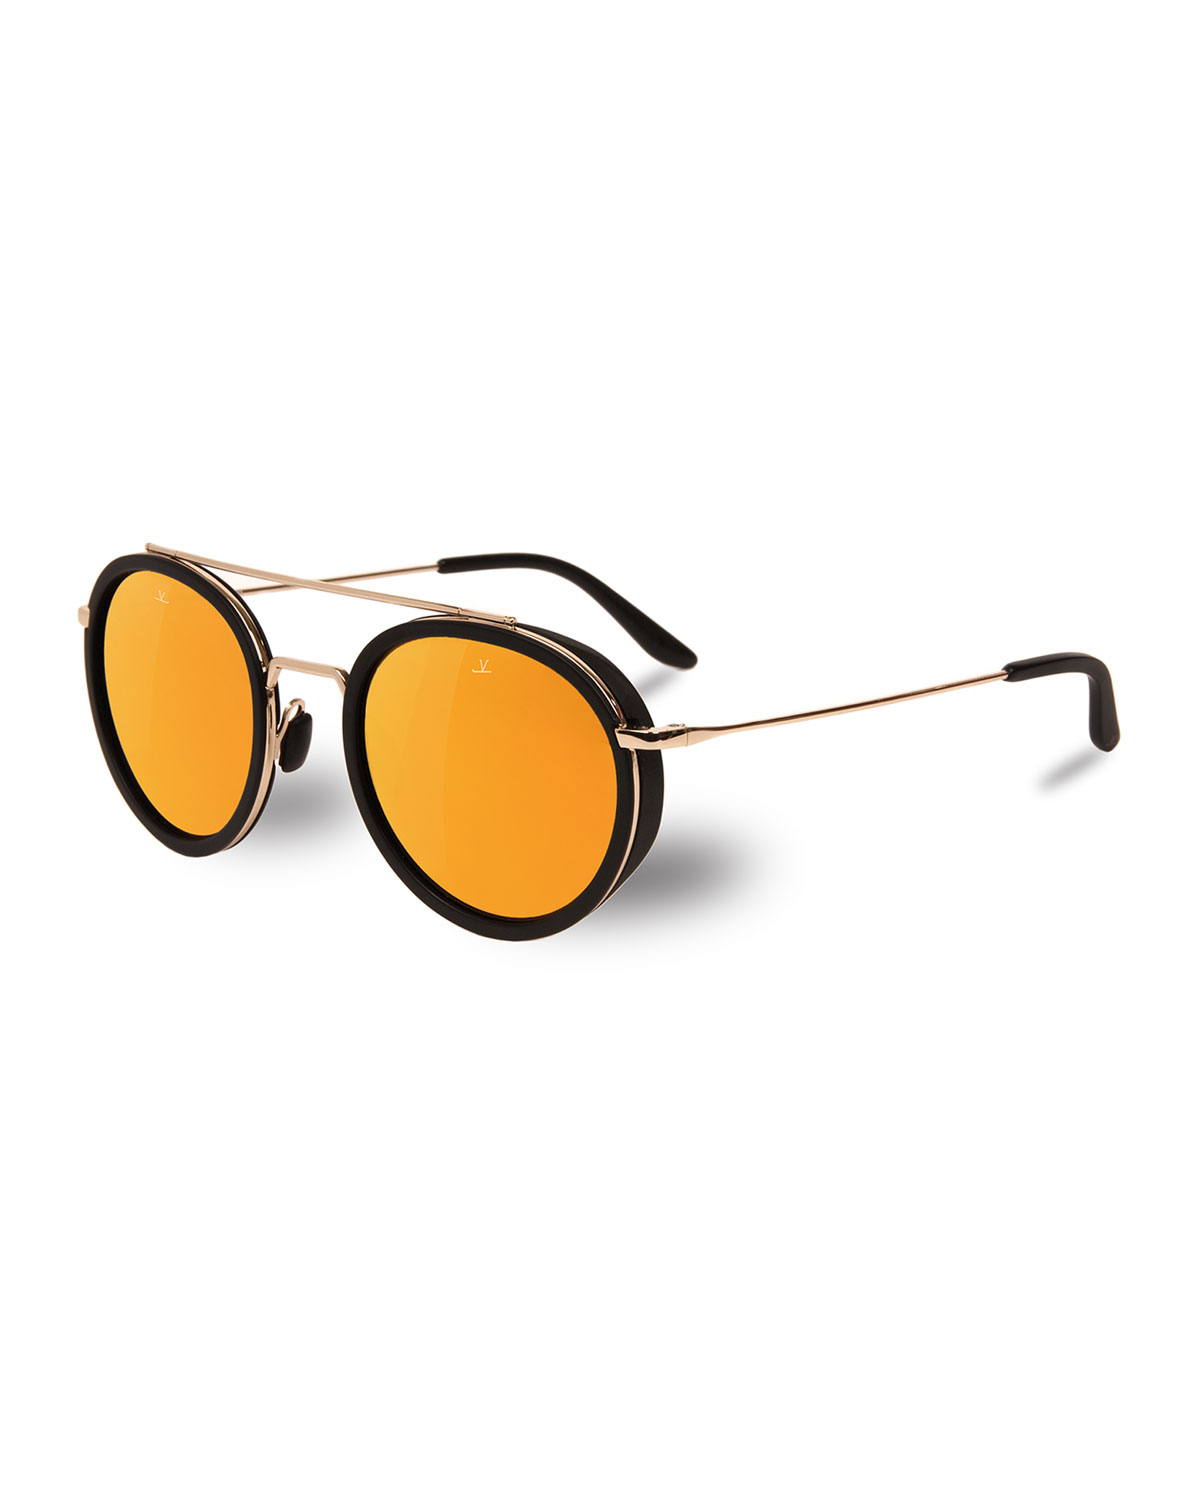 2d3cac67463 Vuarnet Men s Edge Round Stainless Steel Acetate Sunglasses